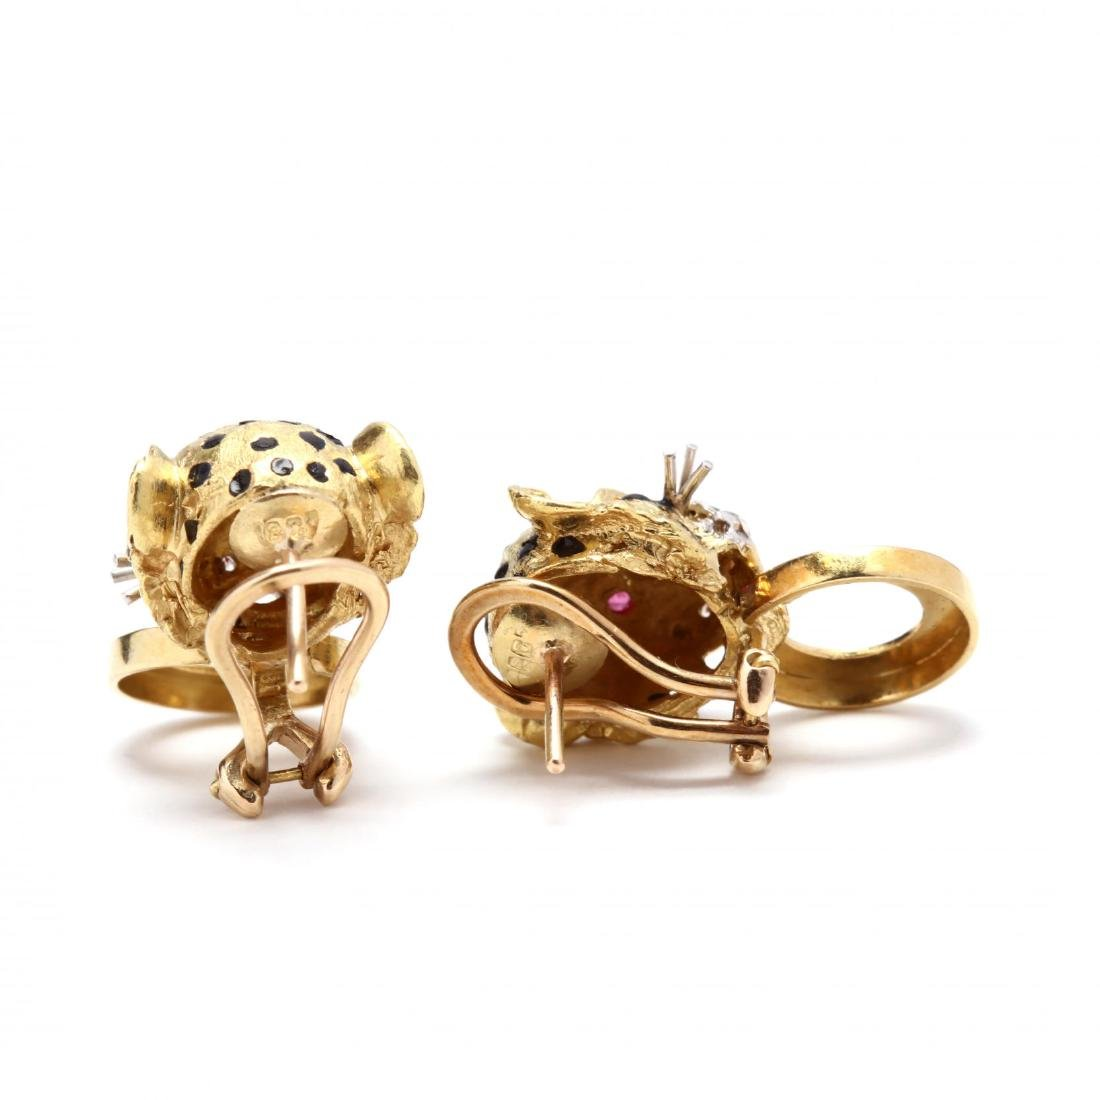 18KT Gold, Enamel, and Gem Set Cheetah Earrings and - 4